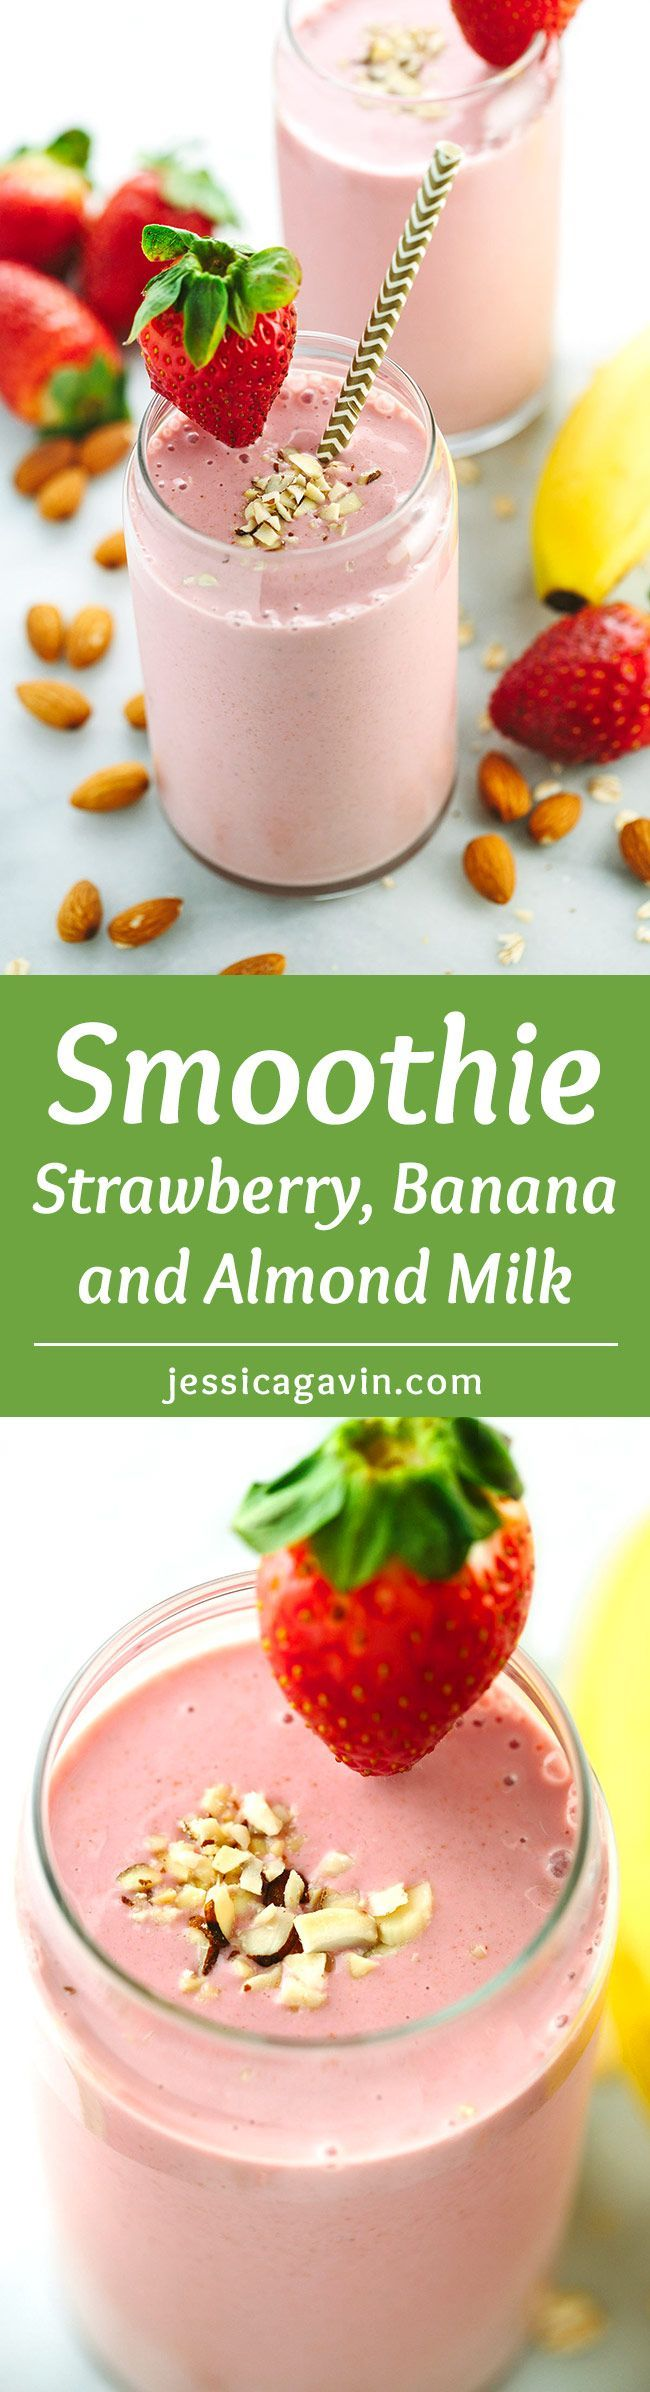 Strawberry Banana Smoothie with Almond Milk - Don't skip breakfast! With fruit, oats, yogurt, and almonds, this on-the-go healthy smoothie recipe will keep you energized when you need it. | jessicagavin.com #healthysmoothie